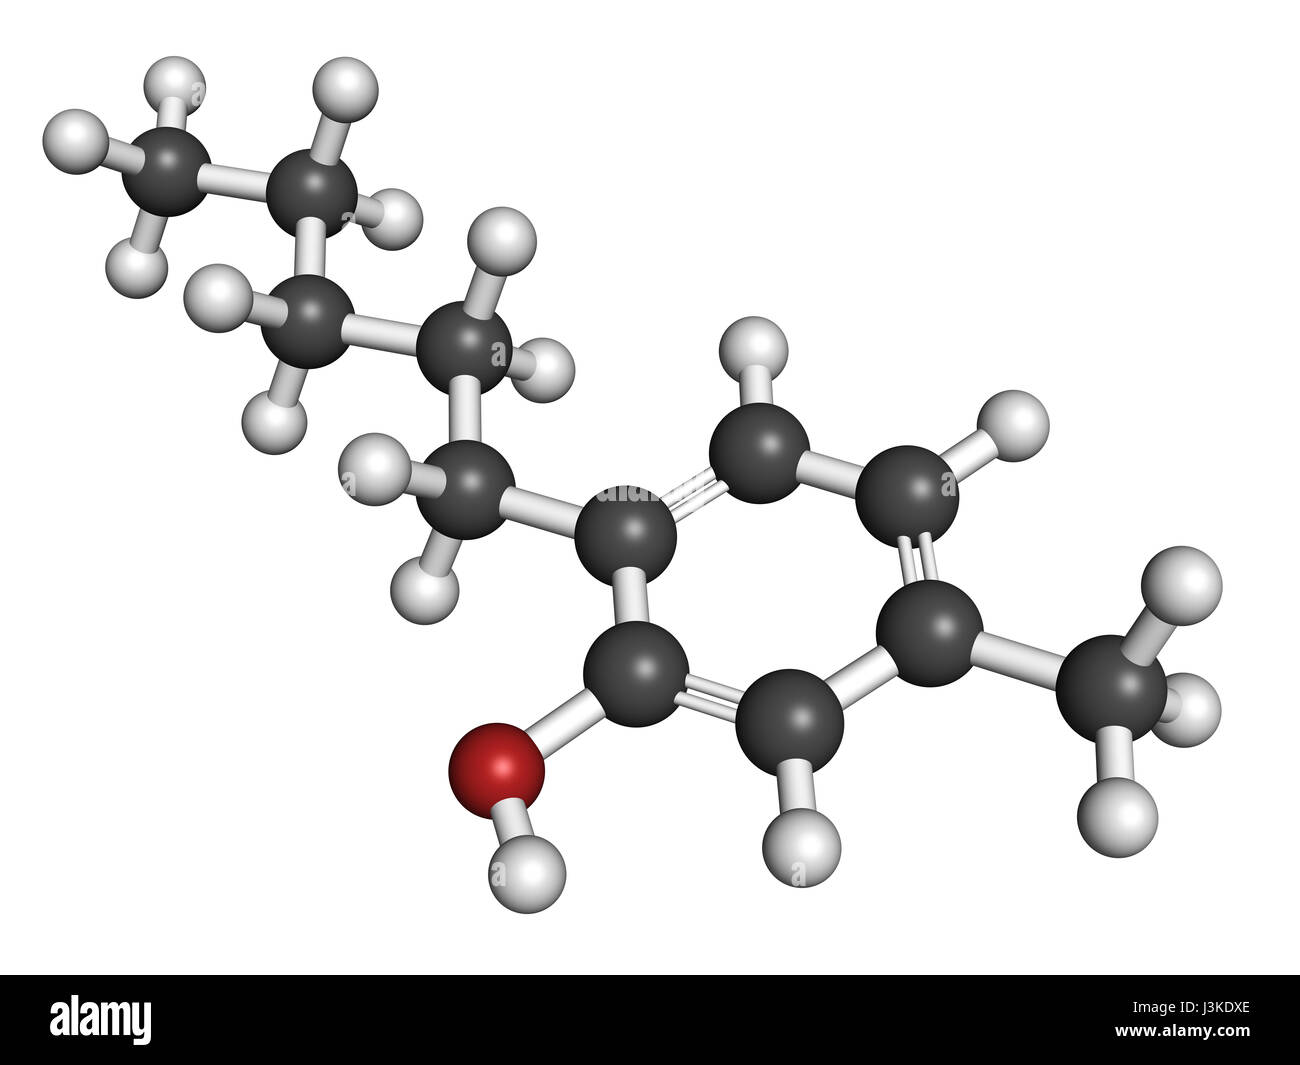 Amylmetacresol antiseptic drug molecule. Used in lozenges to treat sore throat. Atoms are represented as spheres - Stock Image